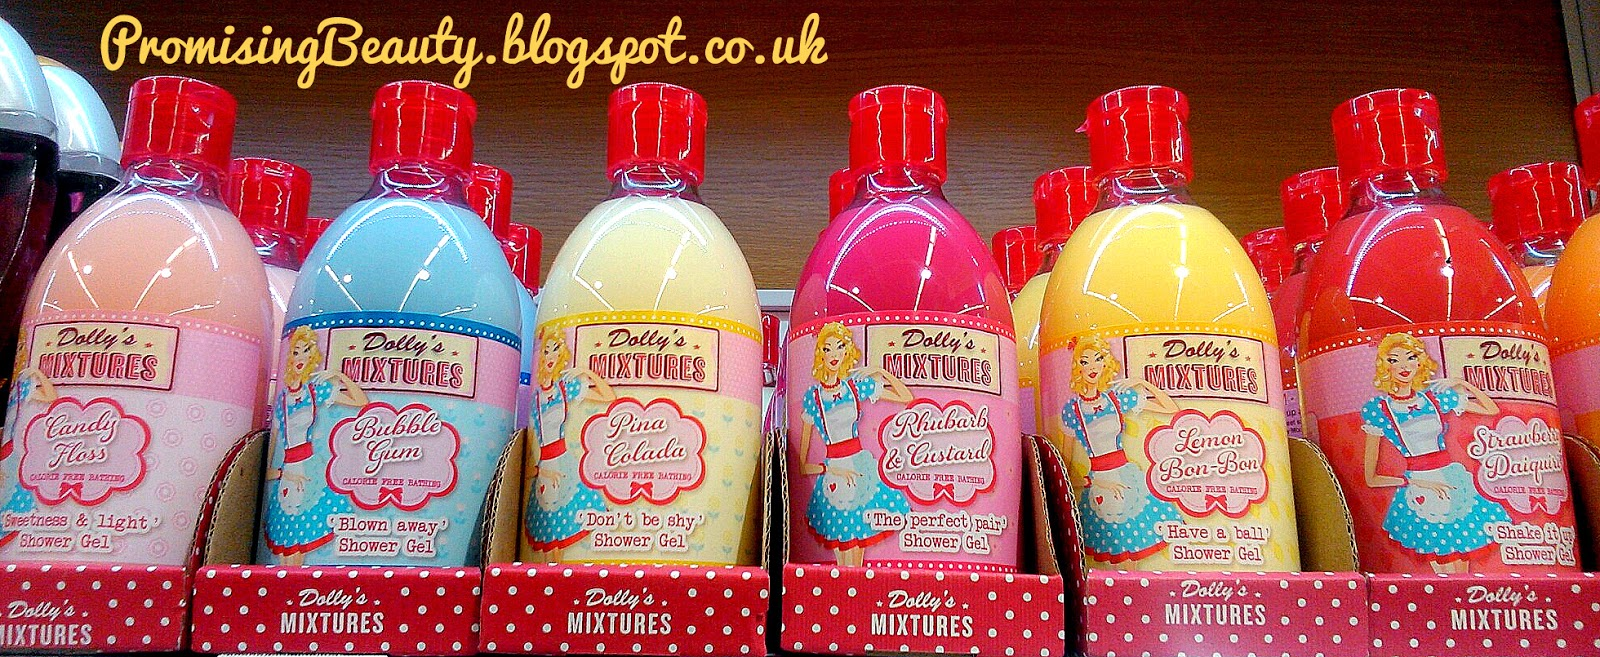 Dollys mixtures shower gel, bubble bath, rhubarb and custard, lemon bon bon, strawberry daiquiri etc